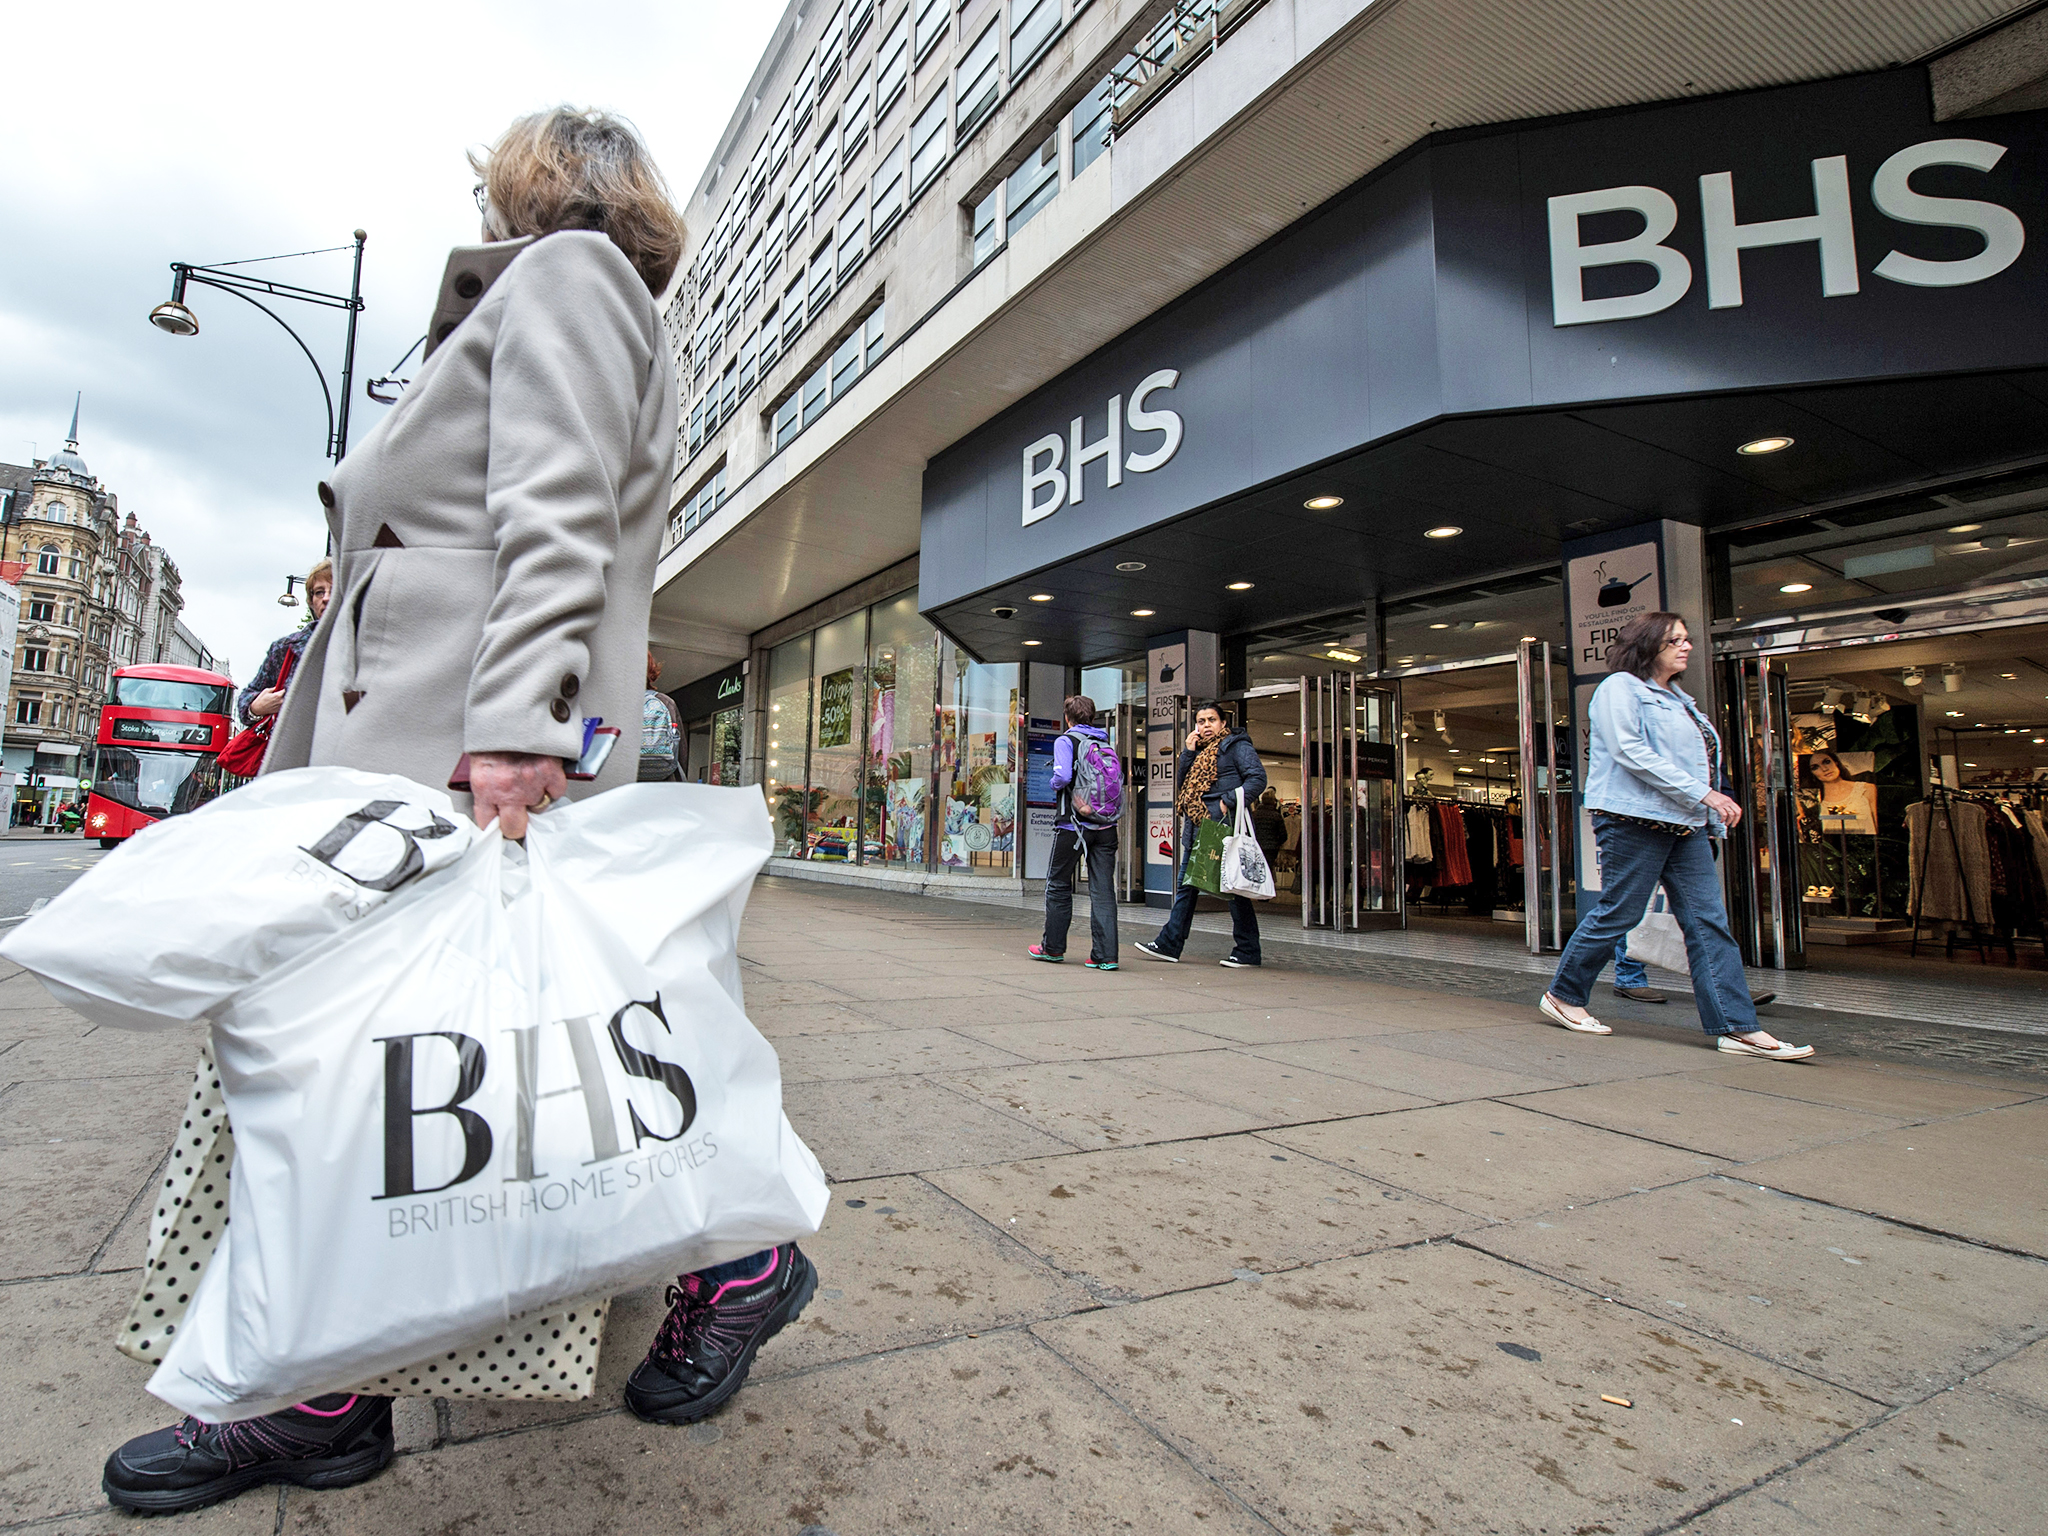 5000 BHS Workers to Lose their Jobs as Retail Giant Ceases Trading